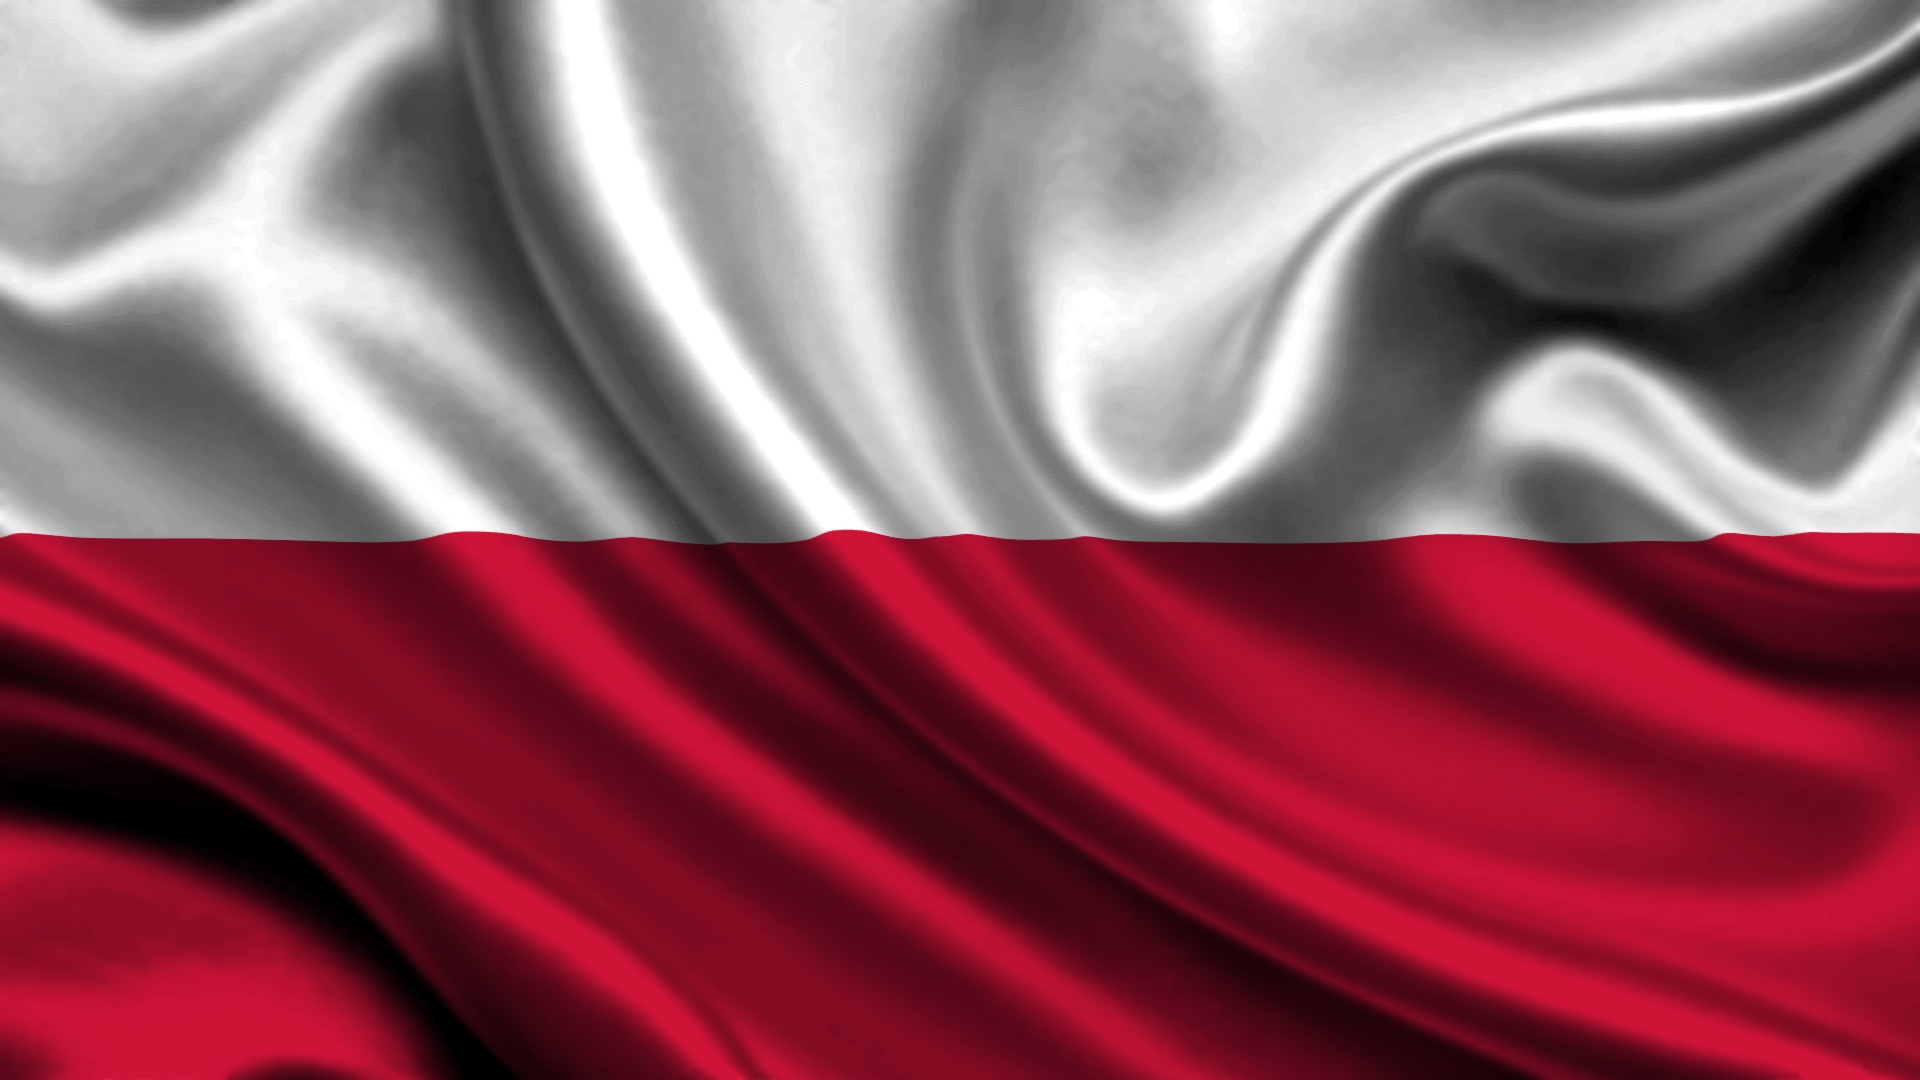 Flag Of Poland HD Wallpaper Background Image 1920x1080 ID 1920x1080